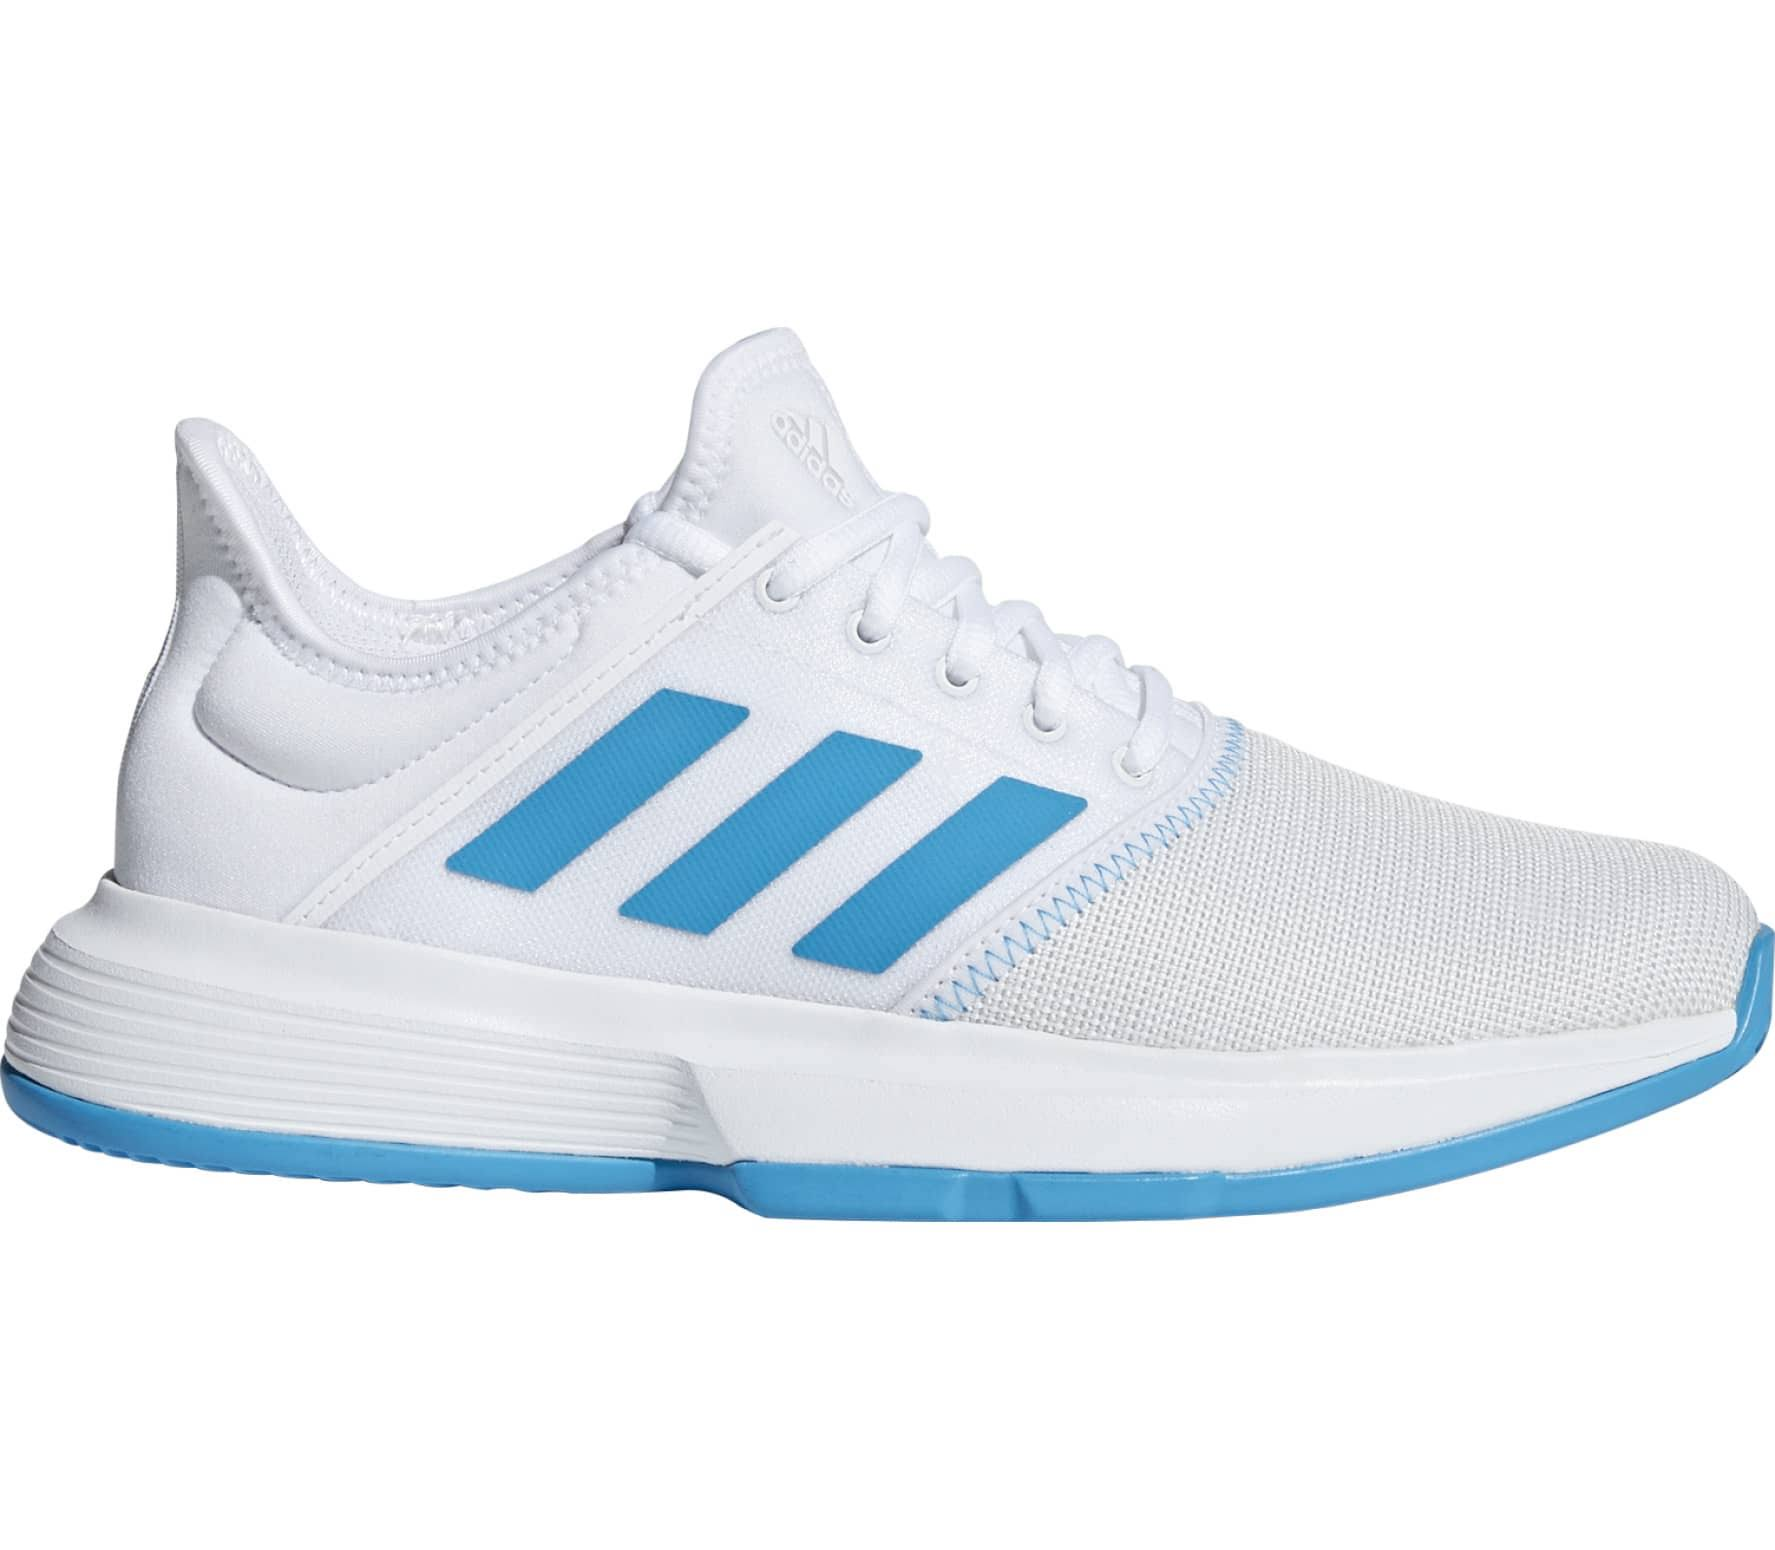 Adidas Game Court Parley Women Tennis Shoes White